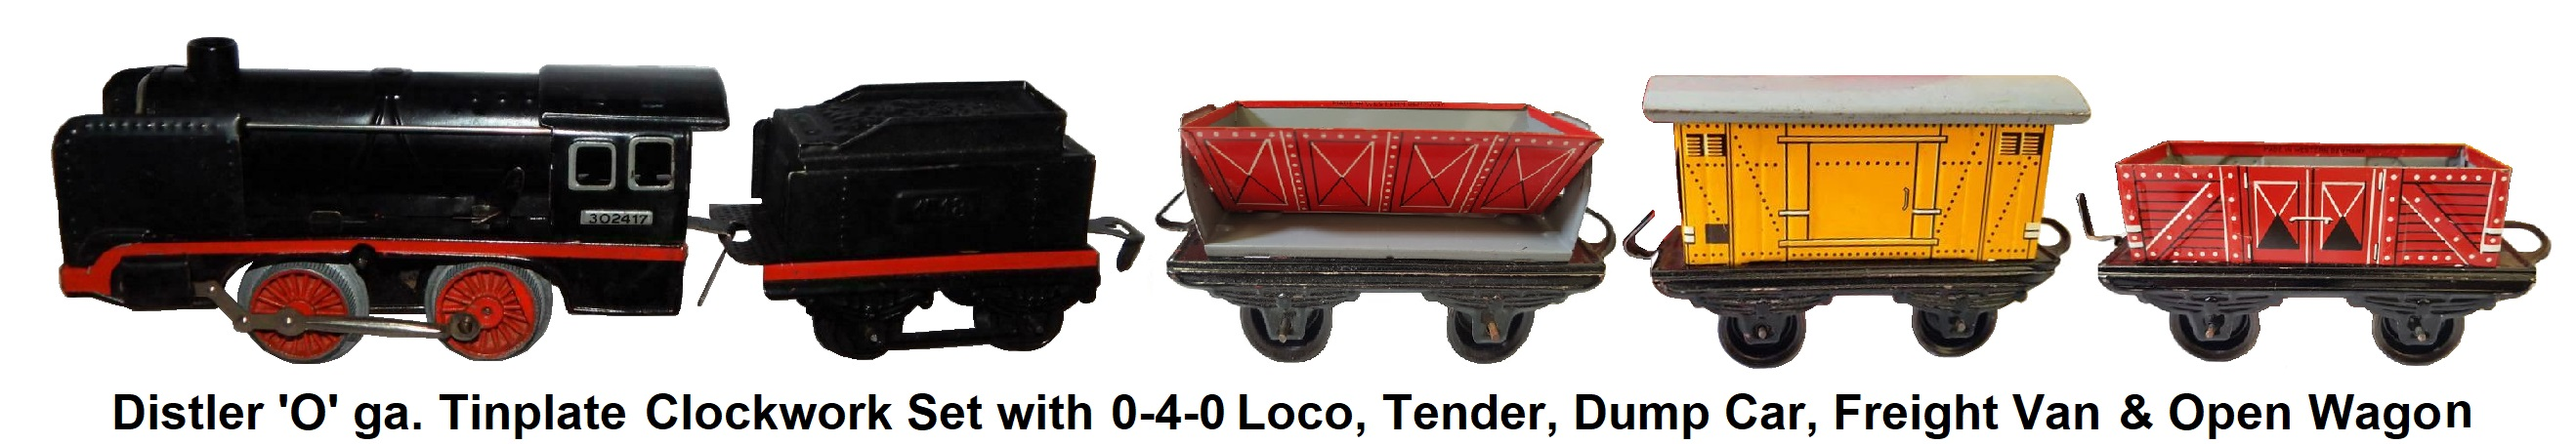 Johann Distler 'O' gauge tinplate lithographed freight set with 0-4-0 clockwork loco, tender, dump car, closed van and open wagon